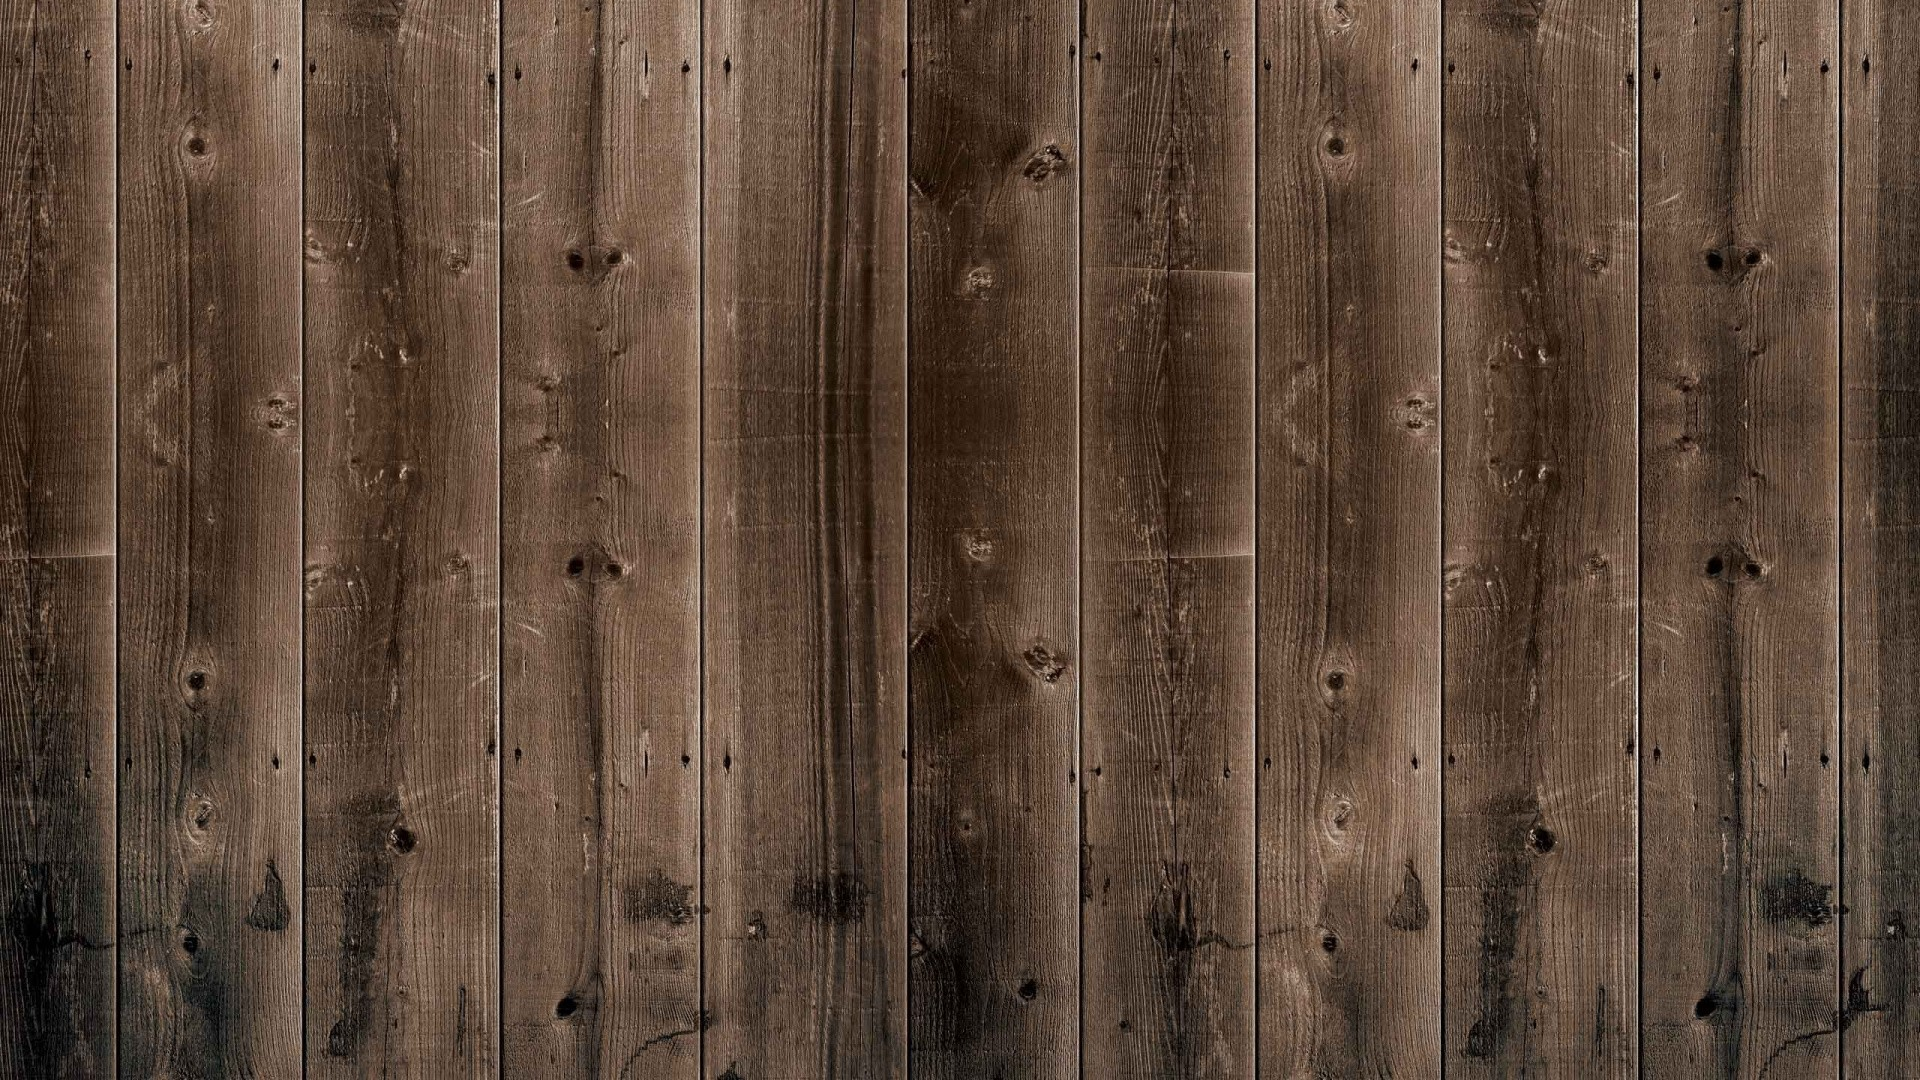 Wood Look Wallpaper and Background